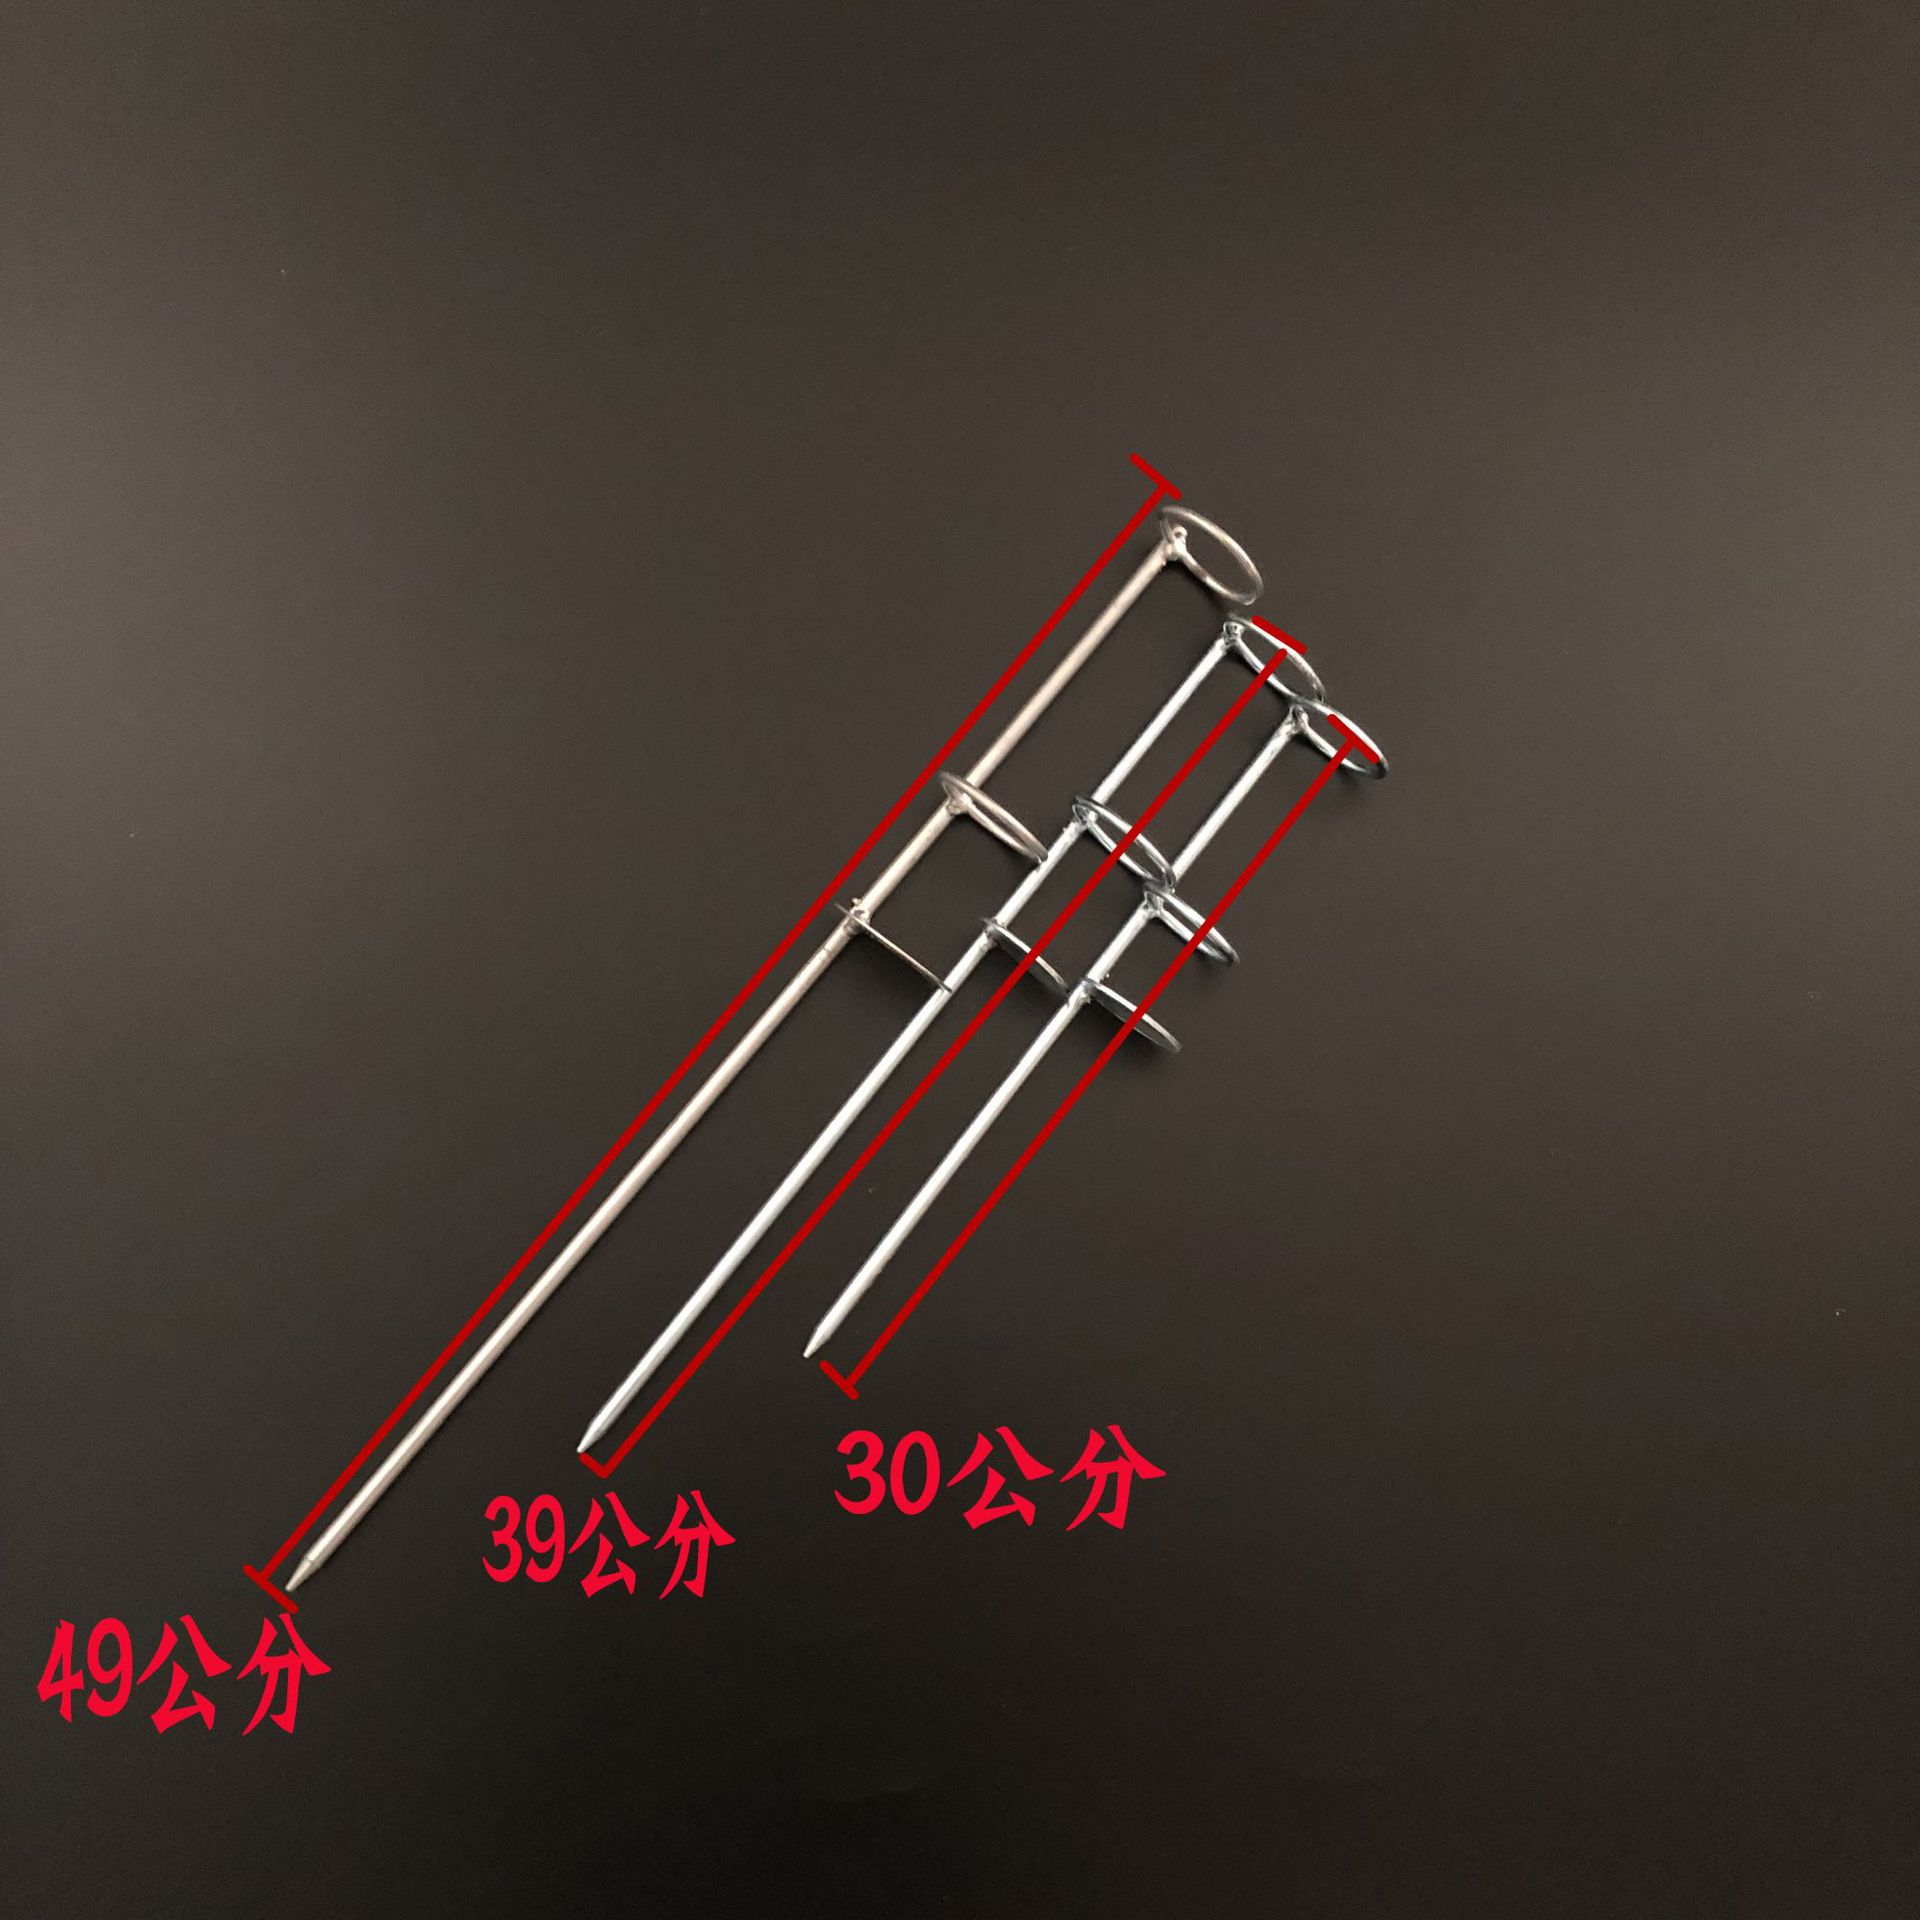 Manufacturers Wholesale Shuanghuan Circle Holder Simplicity Sea Fishing Rod Single Fork Fishing Rod Floor Outlet Angling Supplie|  - title=